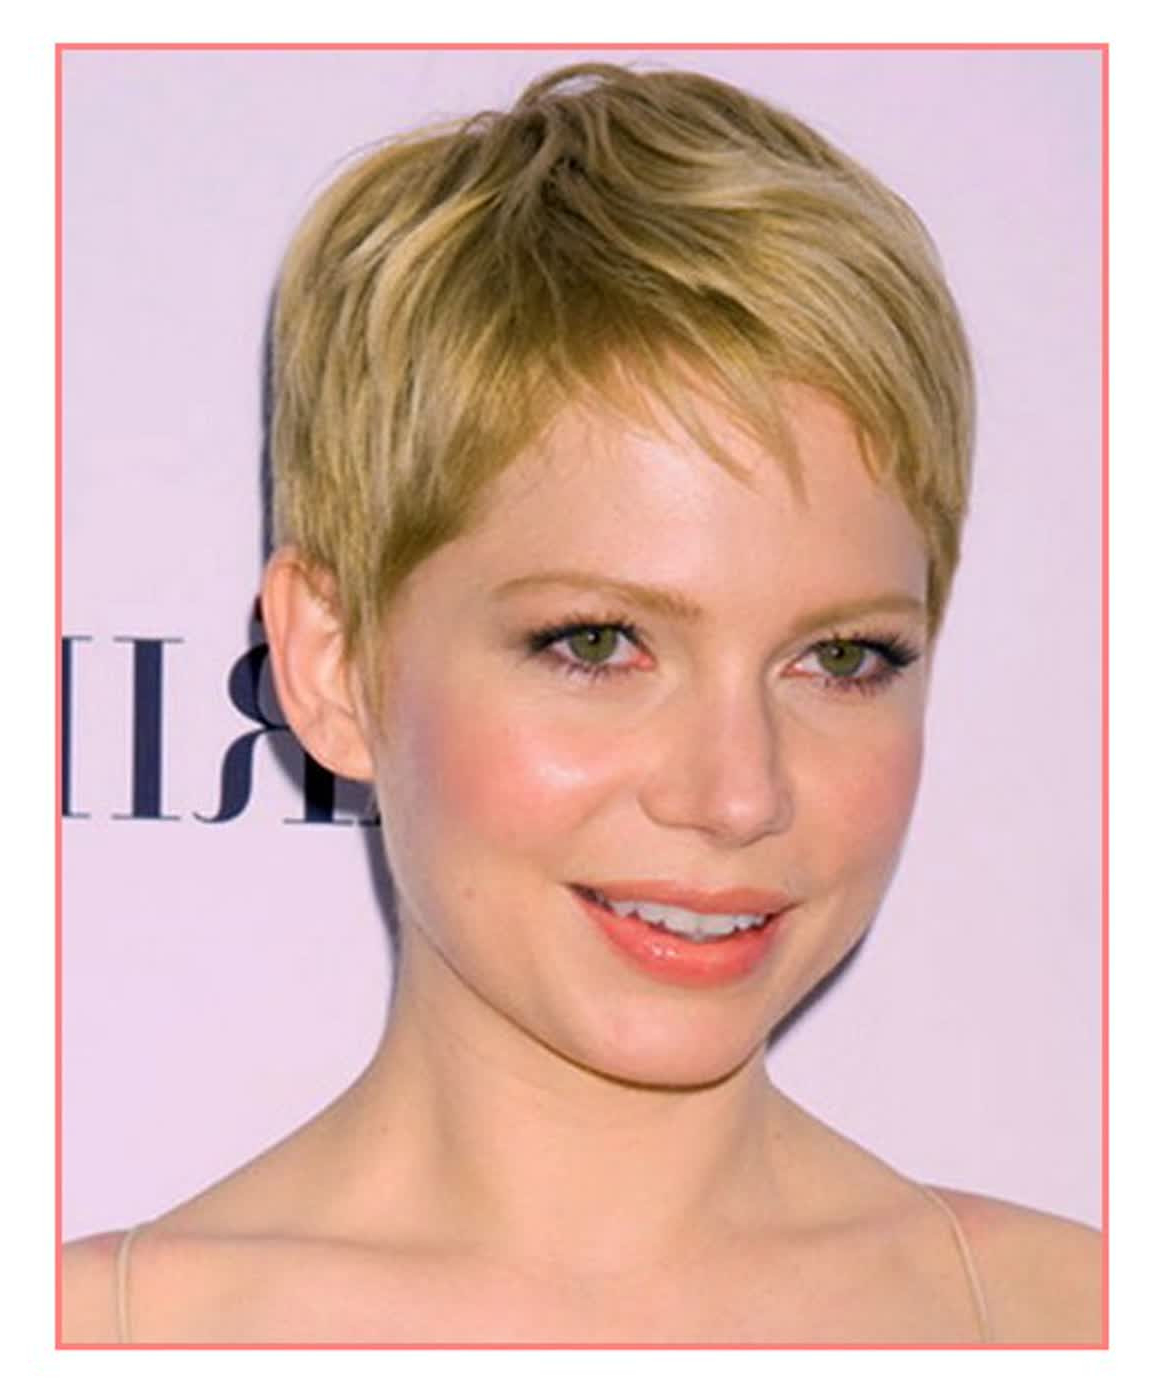 Luxury Funky Short Hairstyles For Round Faces – Uternity Pertaining To Short Short Haircuts For Round Faces (View 15 of 25)